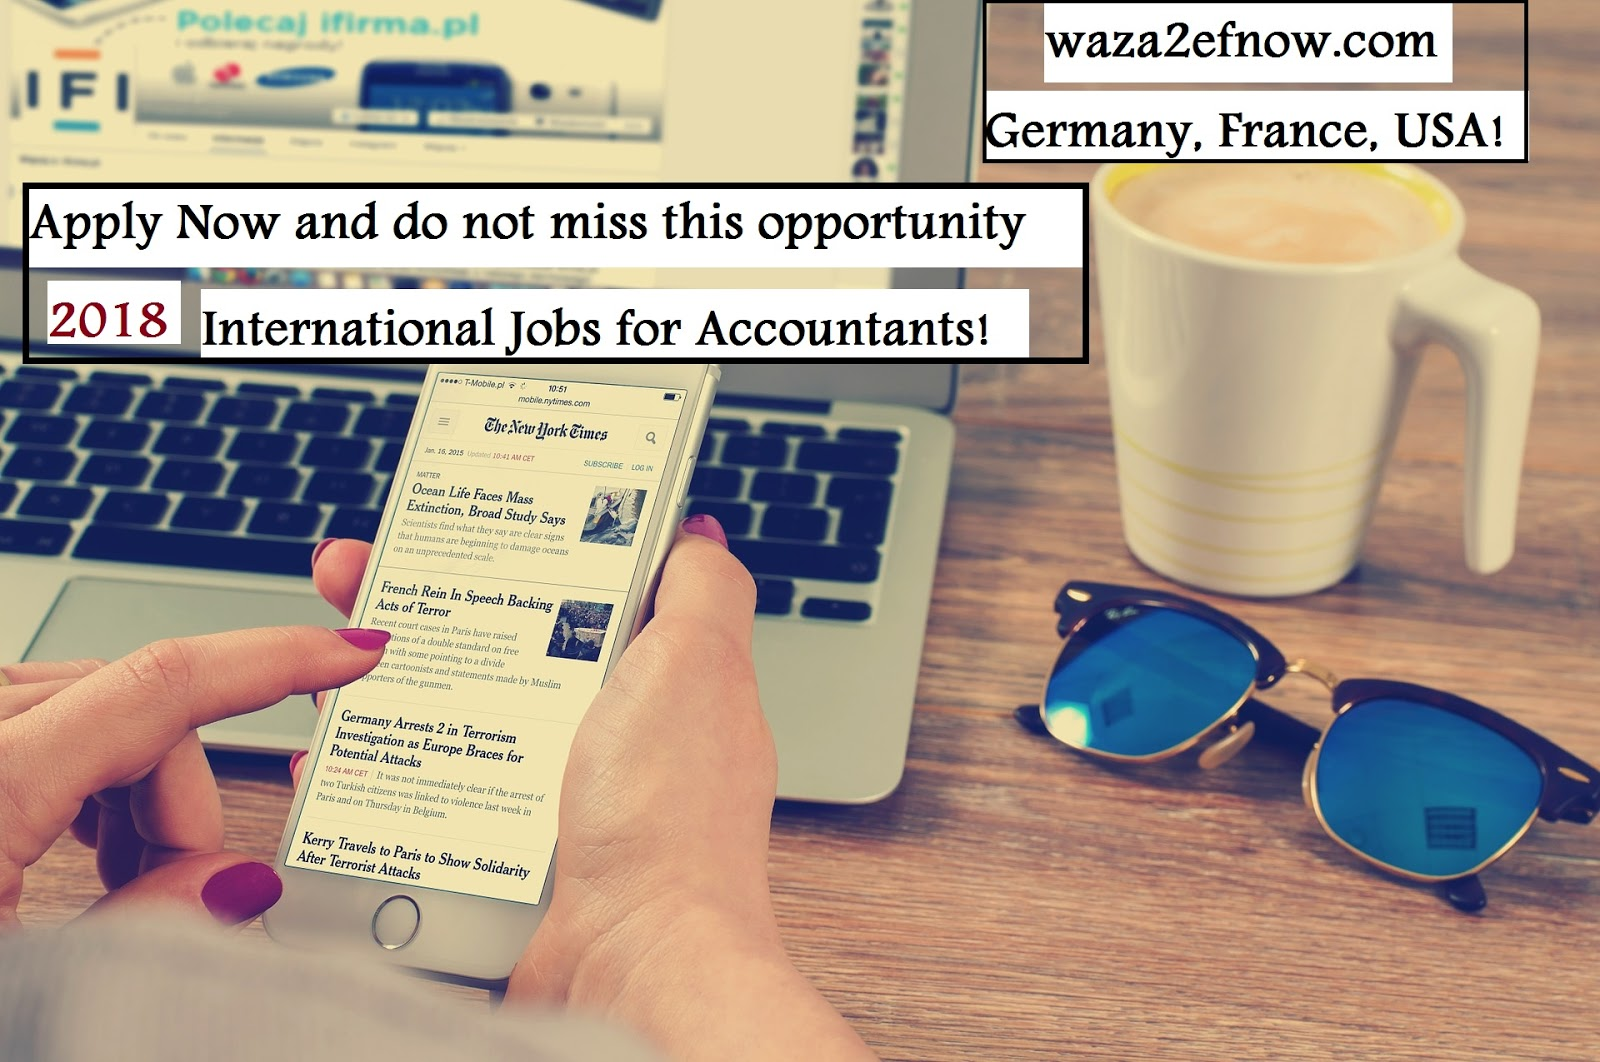 fef536301 International Jobs for Accountants in Germany, France, and America 2018 |  waza2efnow